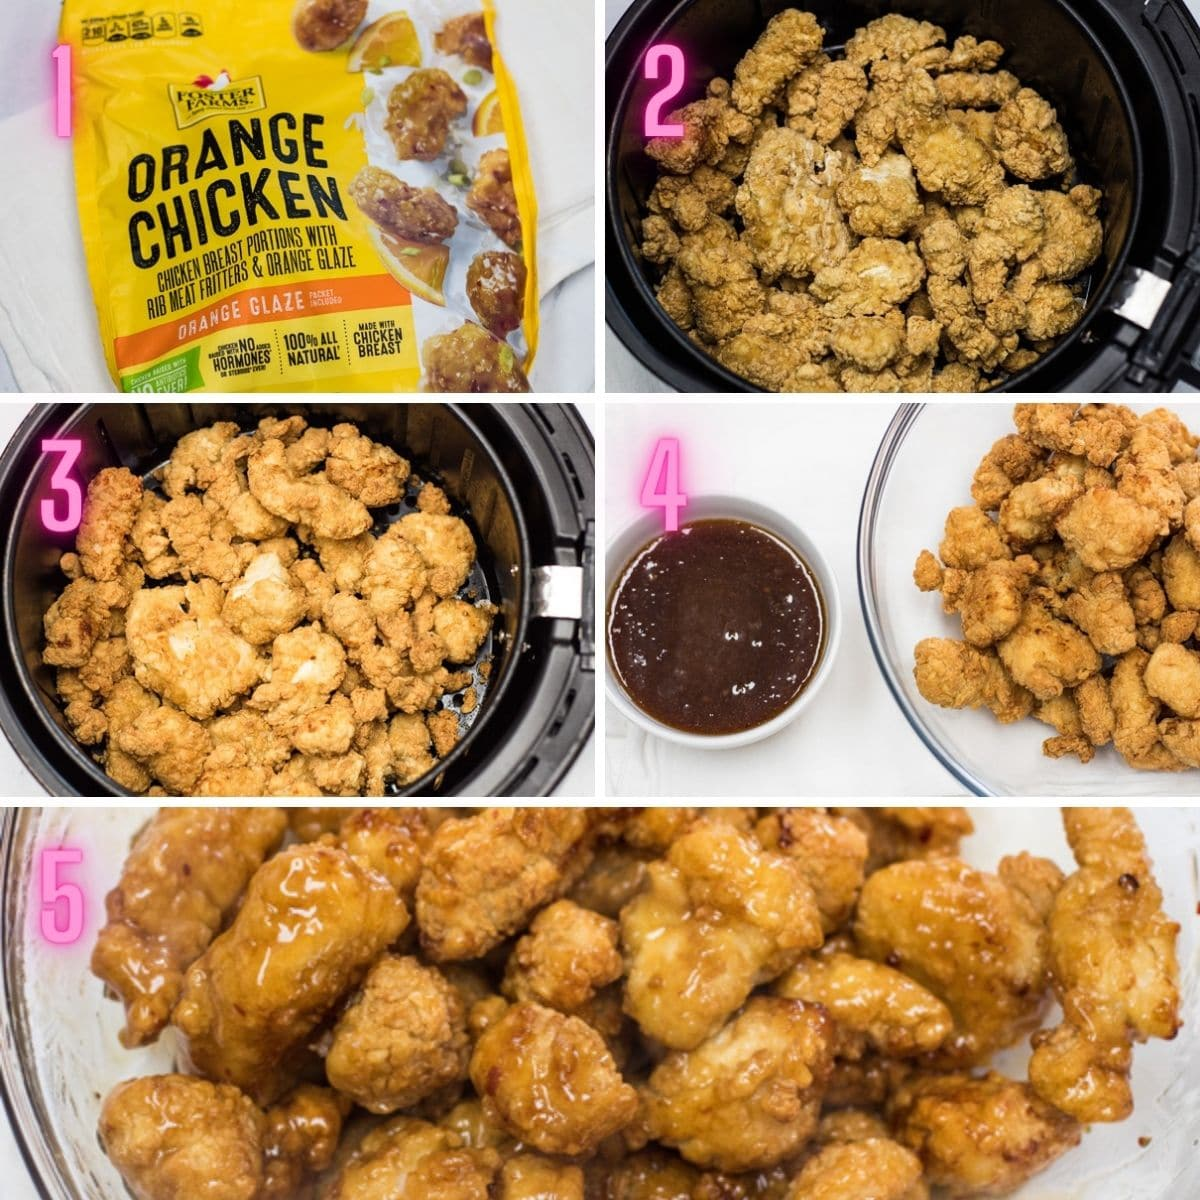 5 step by step photos of cooking the air fryer frozen orange chicken.